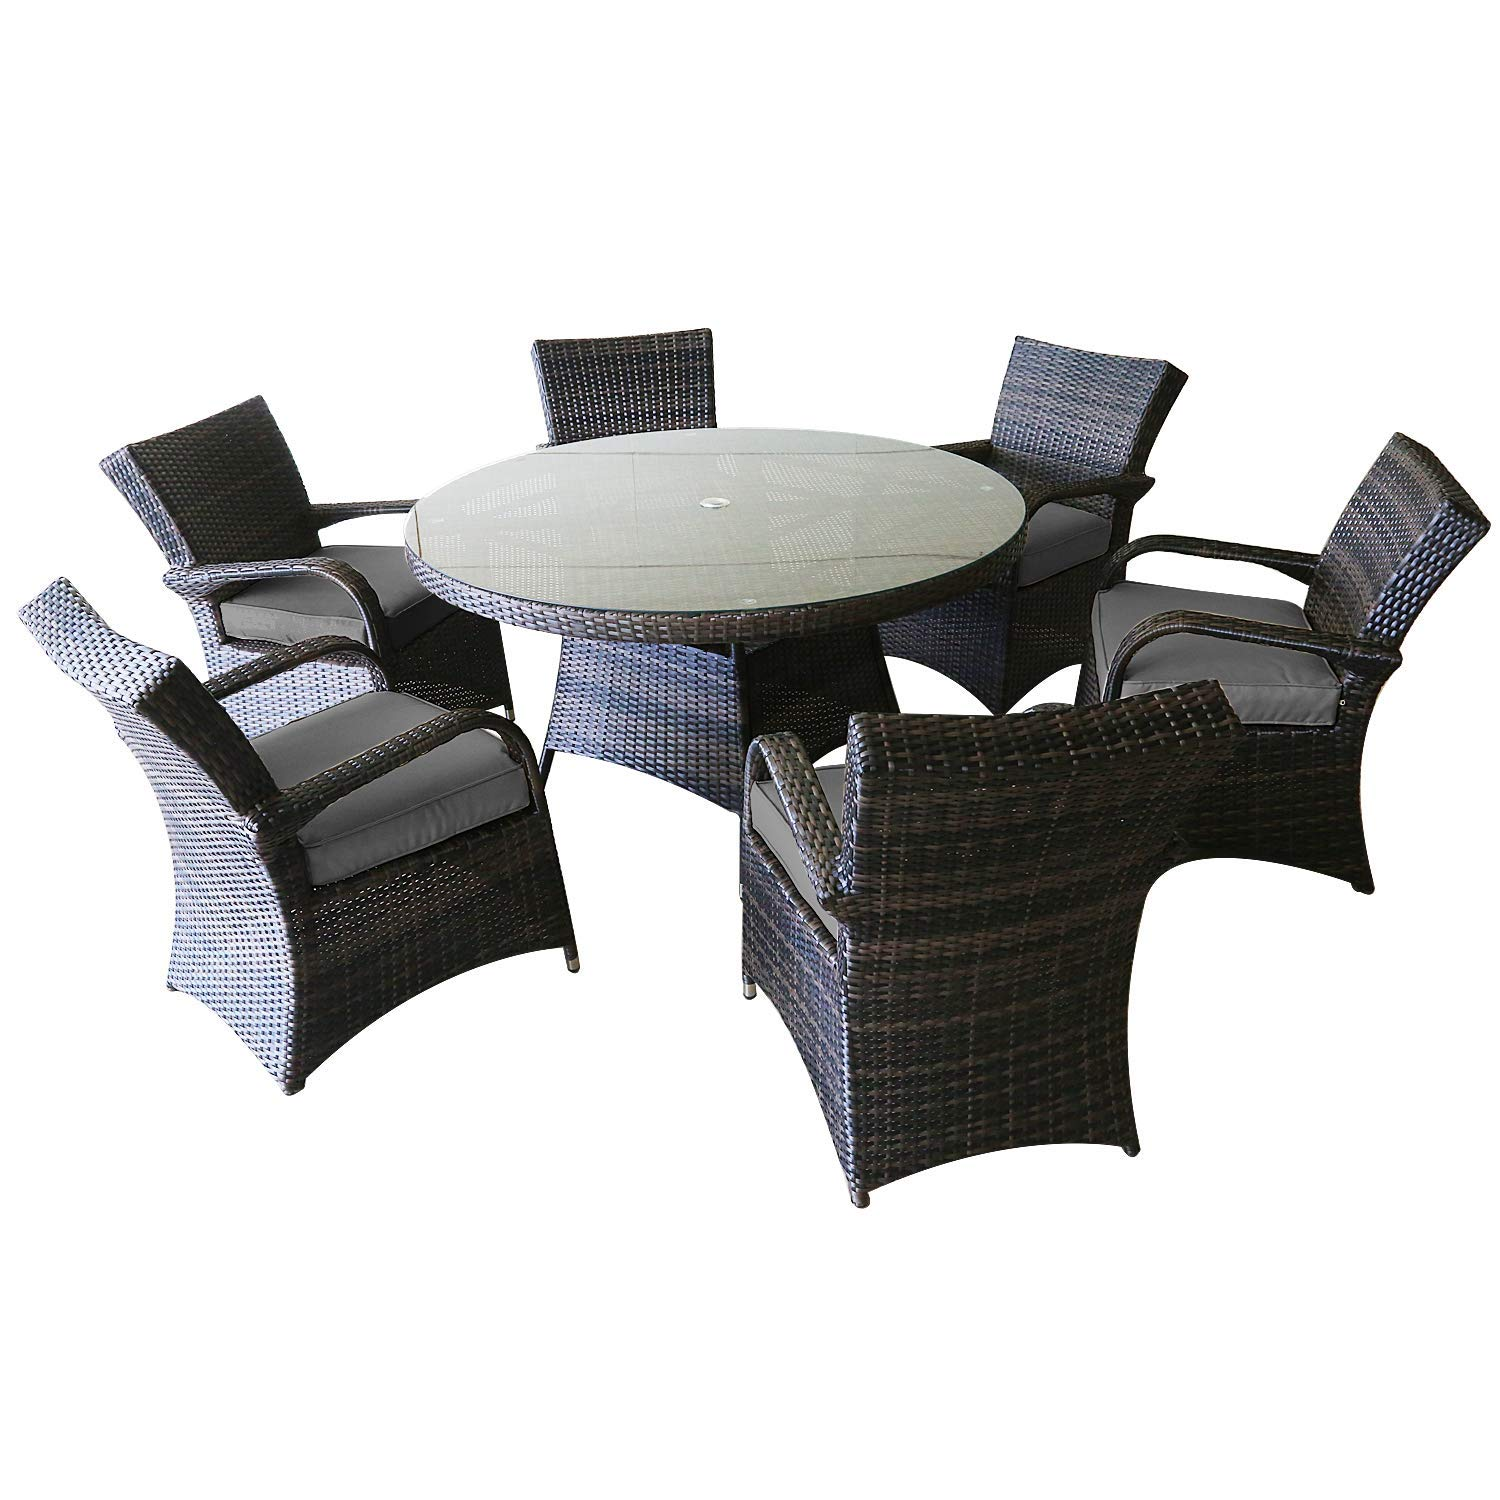 Patioption 7 Pieces (6 Seats) Outdoor Patio Furniture Dining Table Sets, All-Weather Rattan Chairs with Washable Gray Cushions and Wicker Round Tempered Glass Table, Patio Conversation Sets (Gray)